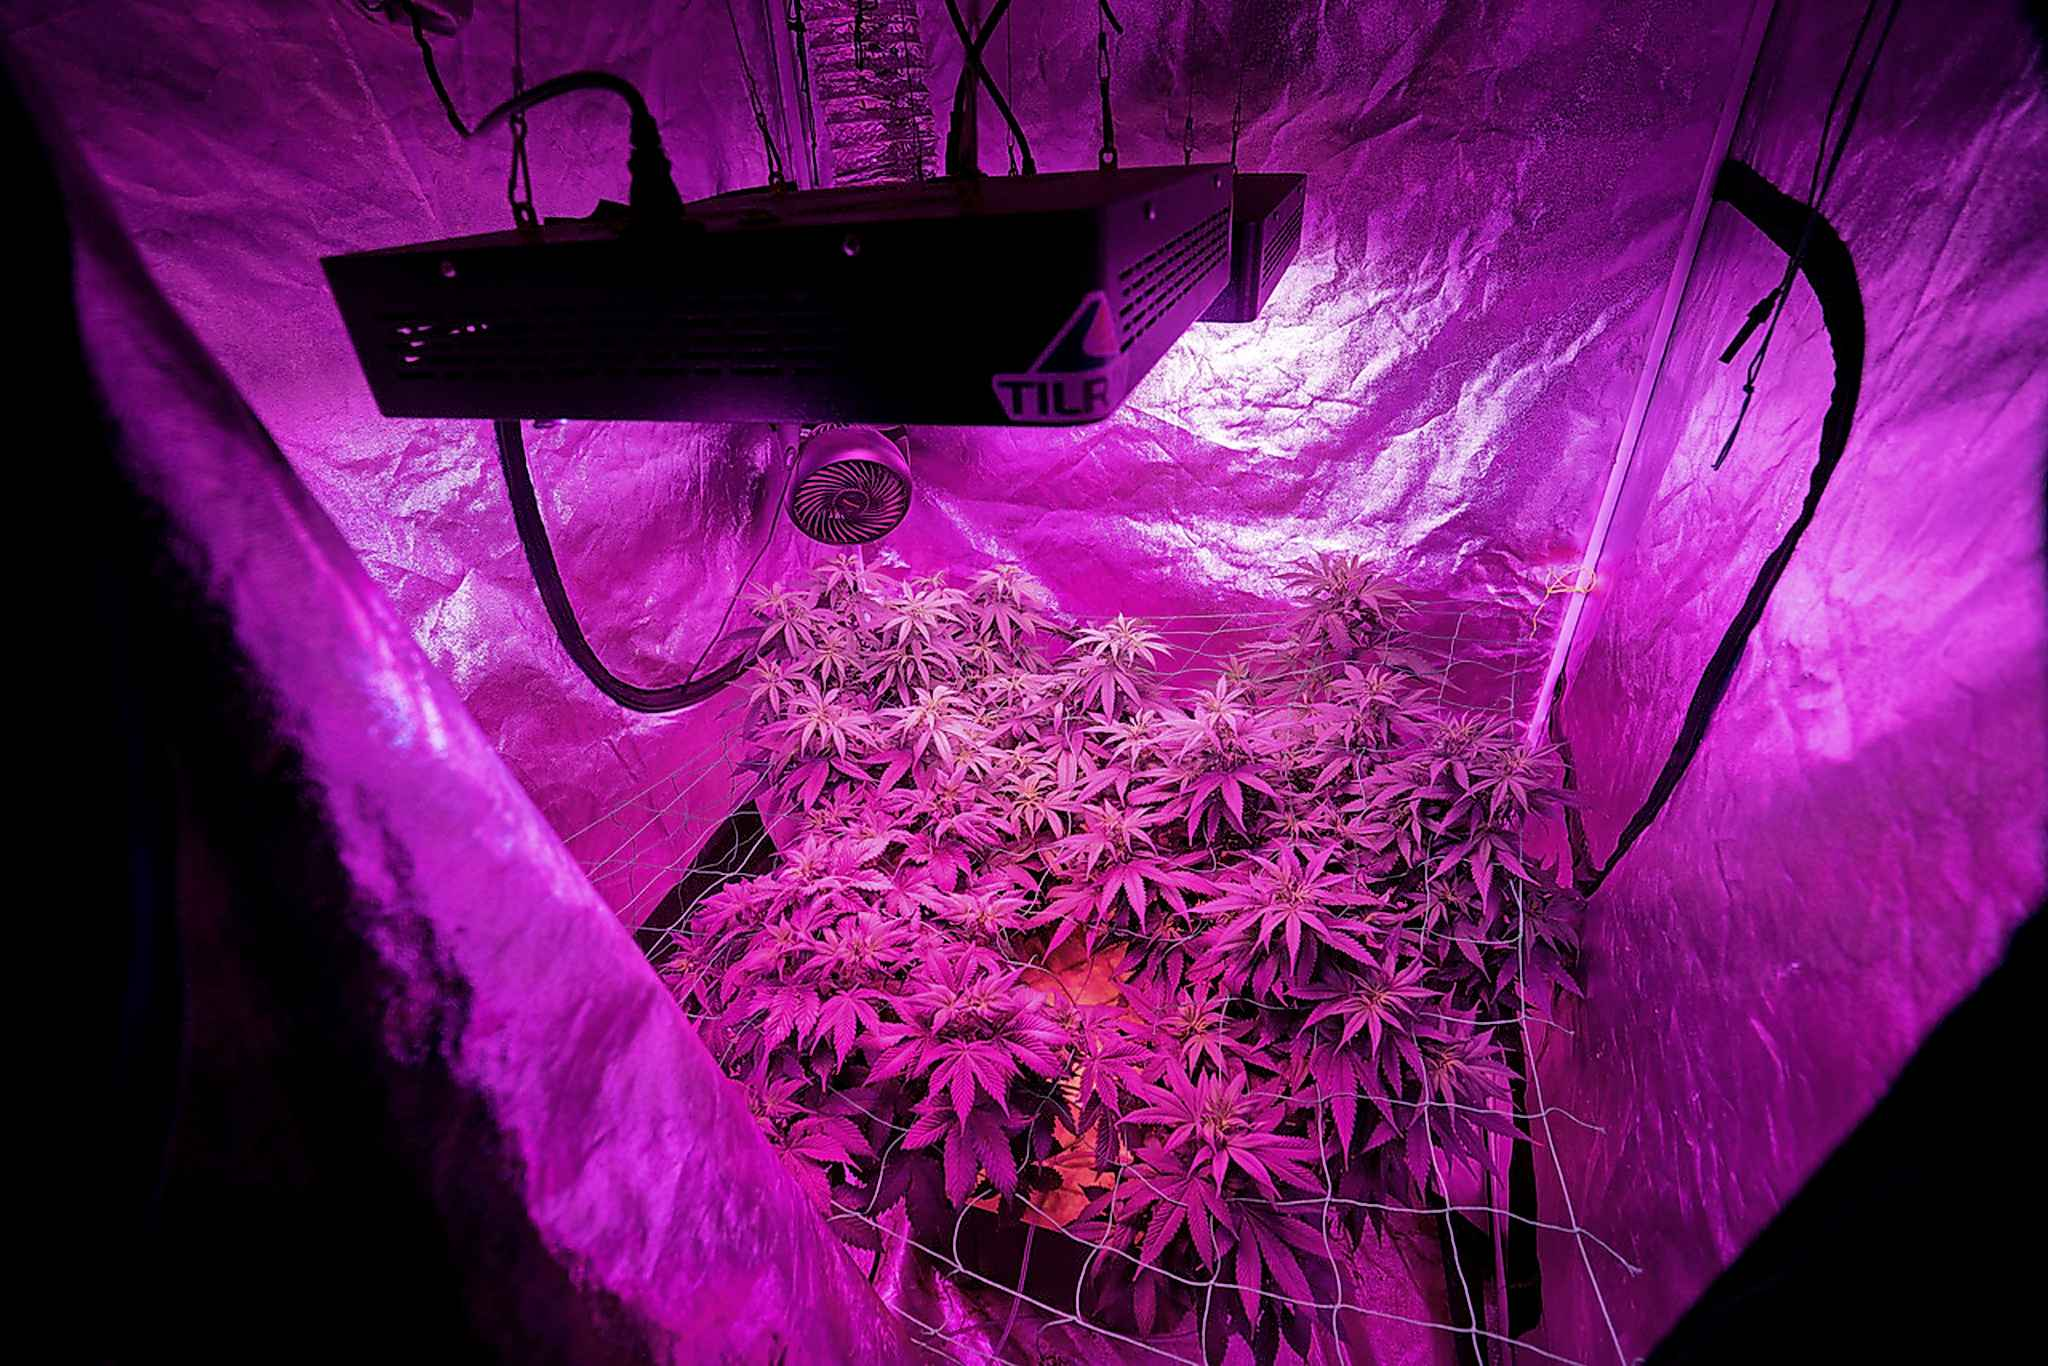 Brad's medical cannabis garden received high marks from Calgary safety inspectors. (Supplied)